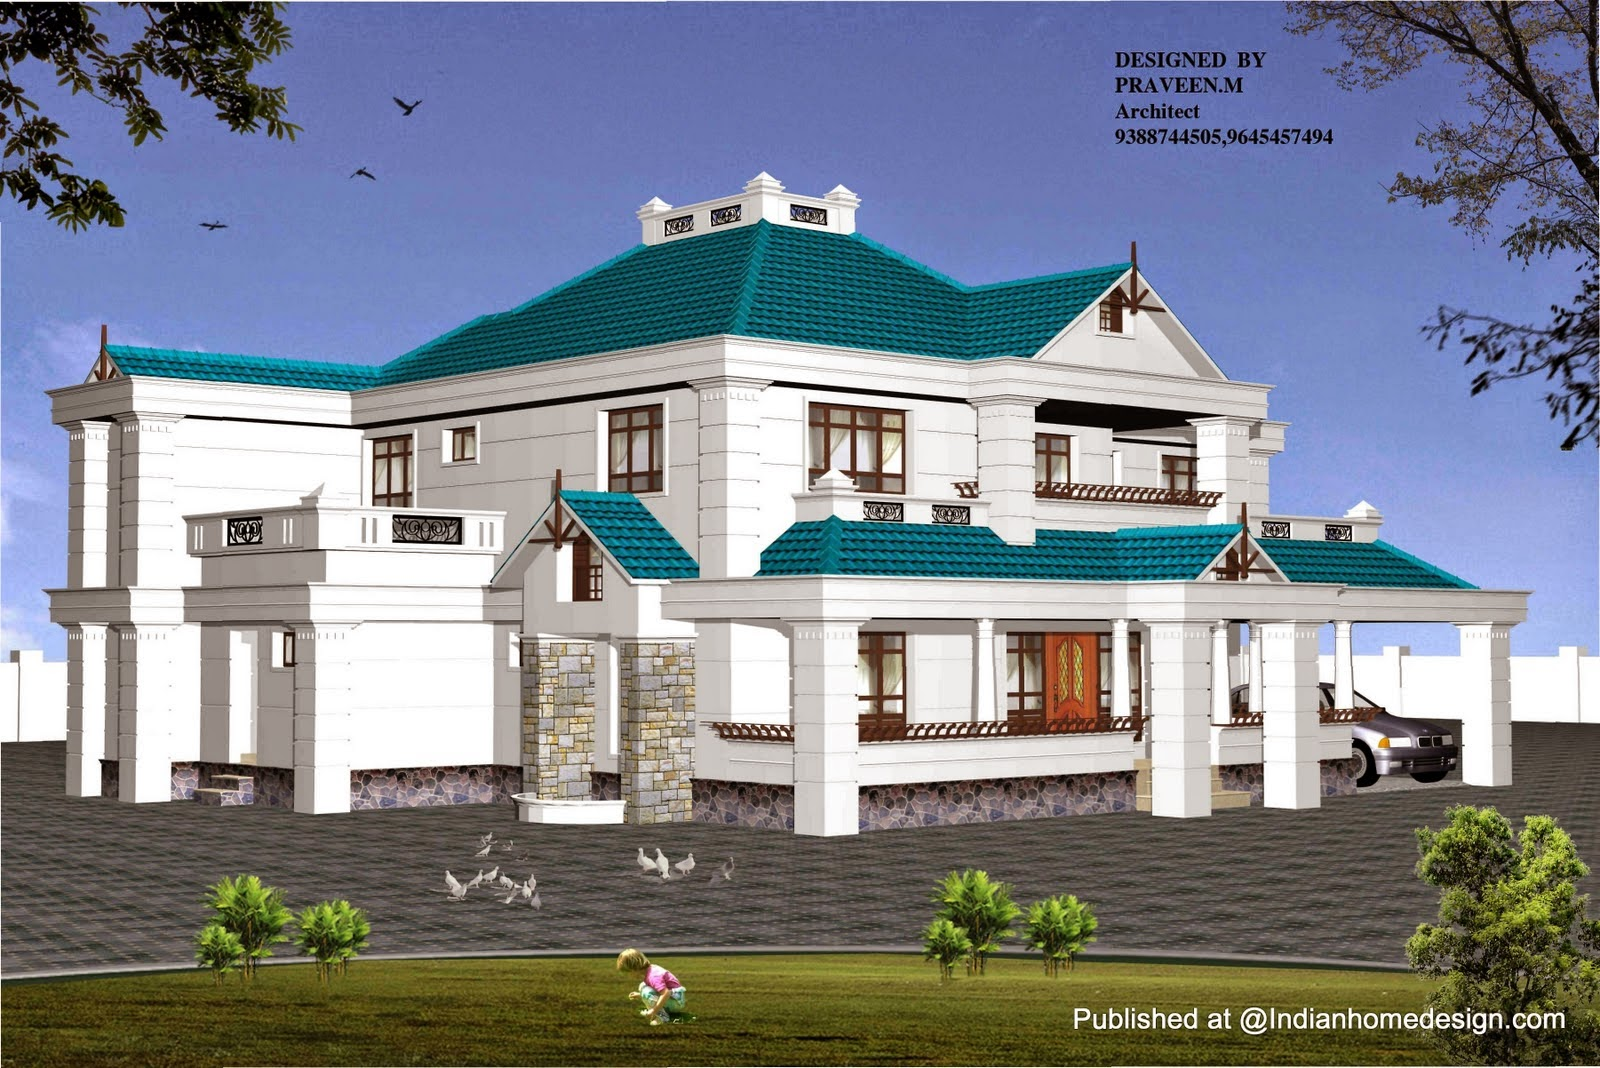 Wallpaper home india wallpaper home for Simple indian home designs